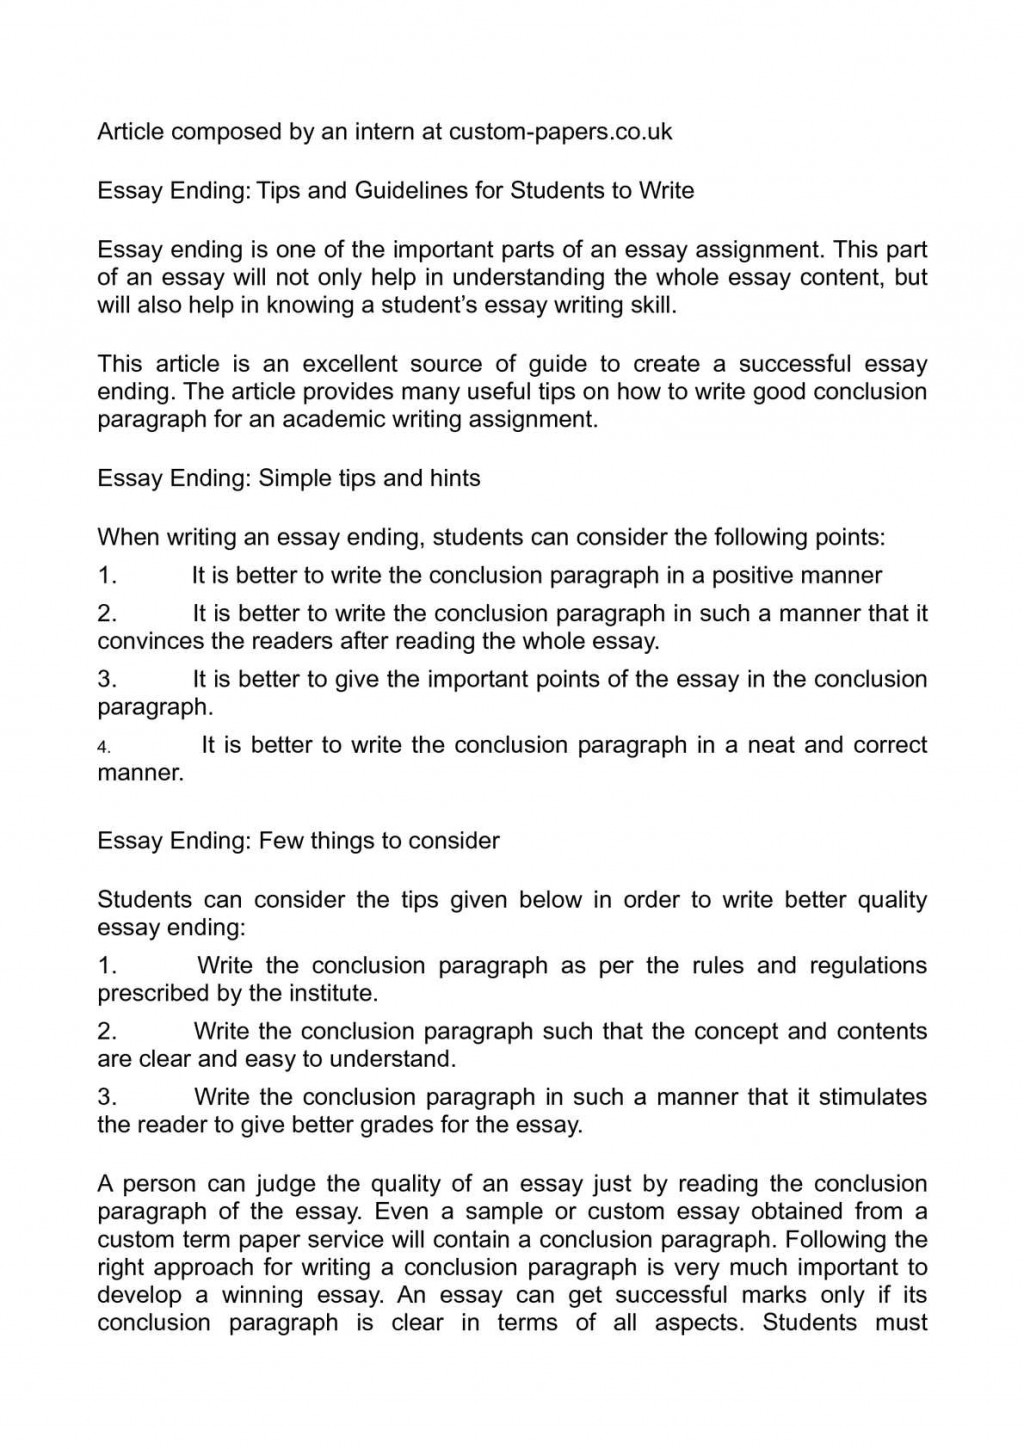 001 Parts Of An Essay Ending Tips And Guidelines For Students To Write Writing Persuasi Pdf Three Persuasive Stupendous Introduction Body Conclusion The Academic Large